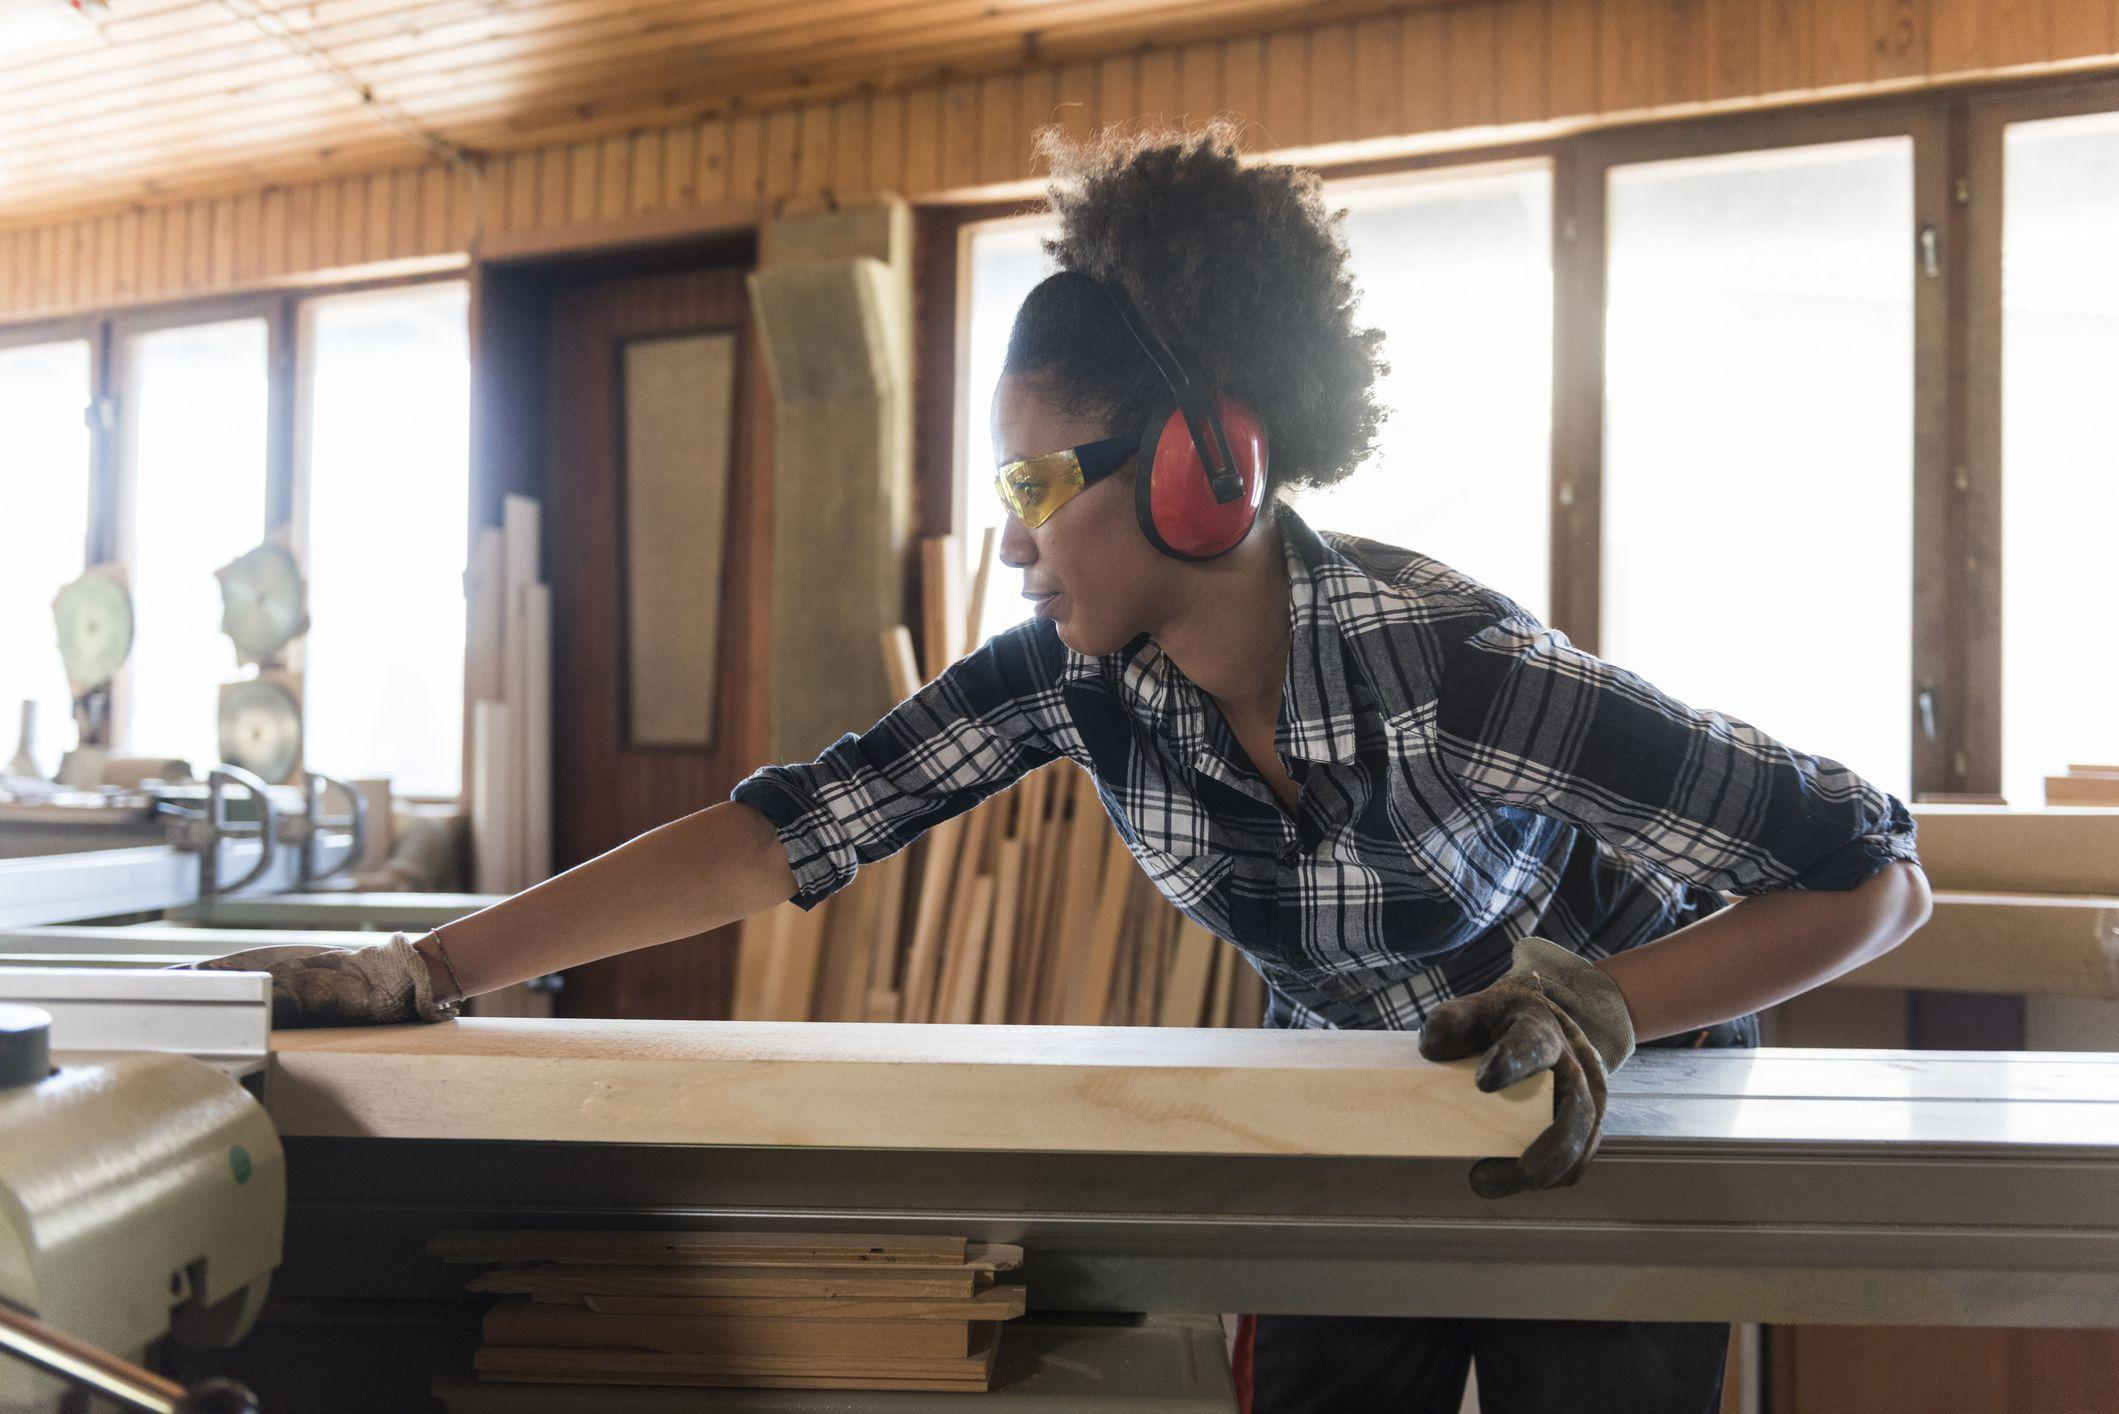 Ready to Build Something? These Woodworking Projects Are Great for Every Skill Level